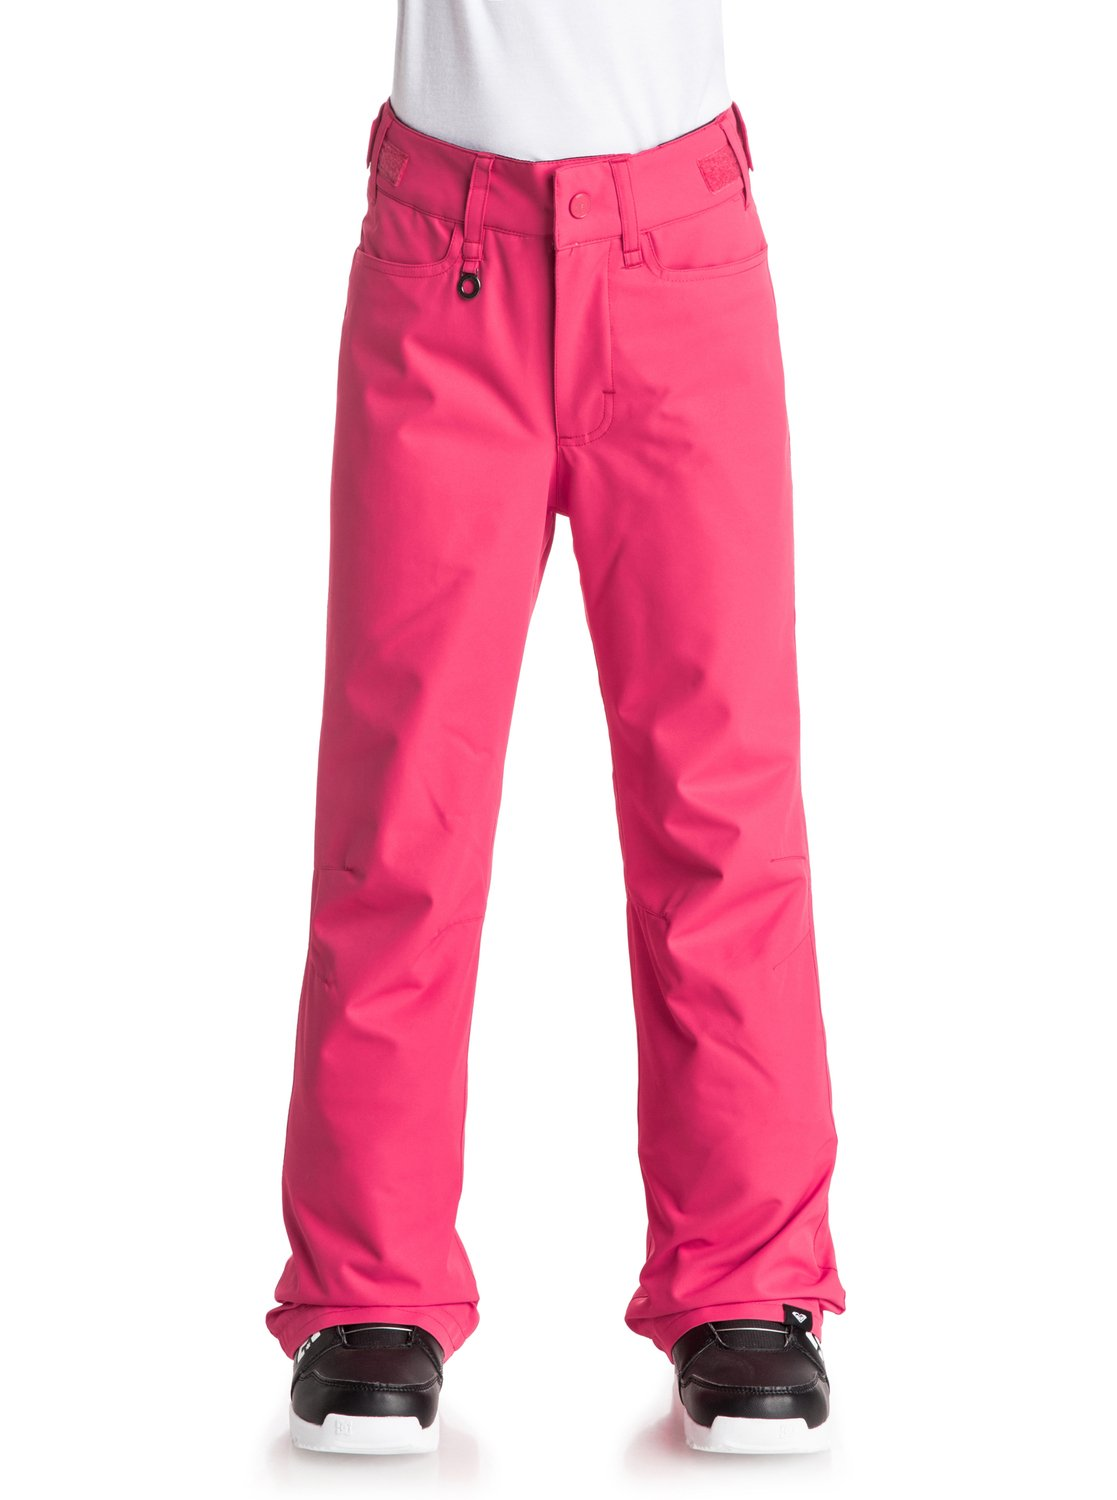 Сноубордические штаны BackyardThe Backyard snow pants for girls have been constructed with 10K ROXY DryFlight® technology waterproofing for reliable waterproof and breathable protection. An easy-to-wear regular fit allows space to move and is complemented by Warmflight® level 2 insulation for low-bulk warmth and critically-taped seams for extra protection in the most exposed areas.<br>